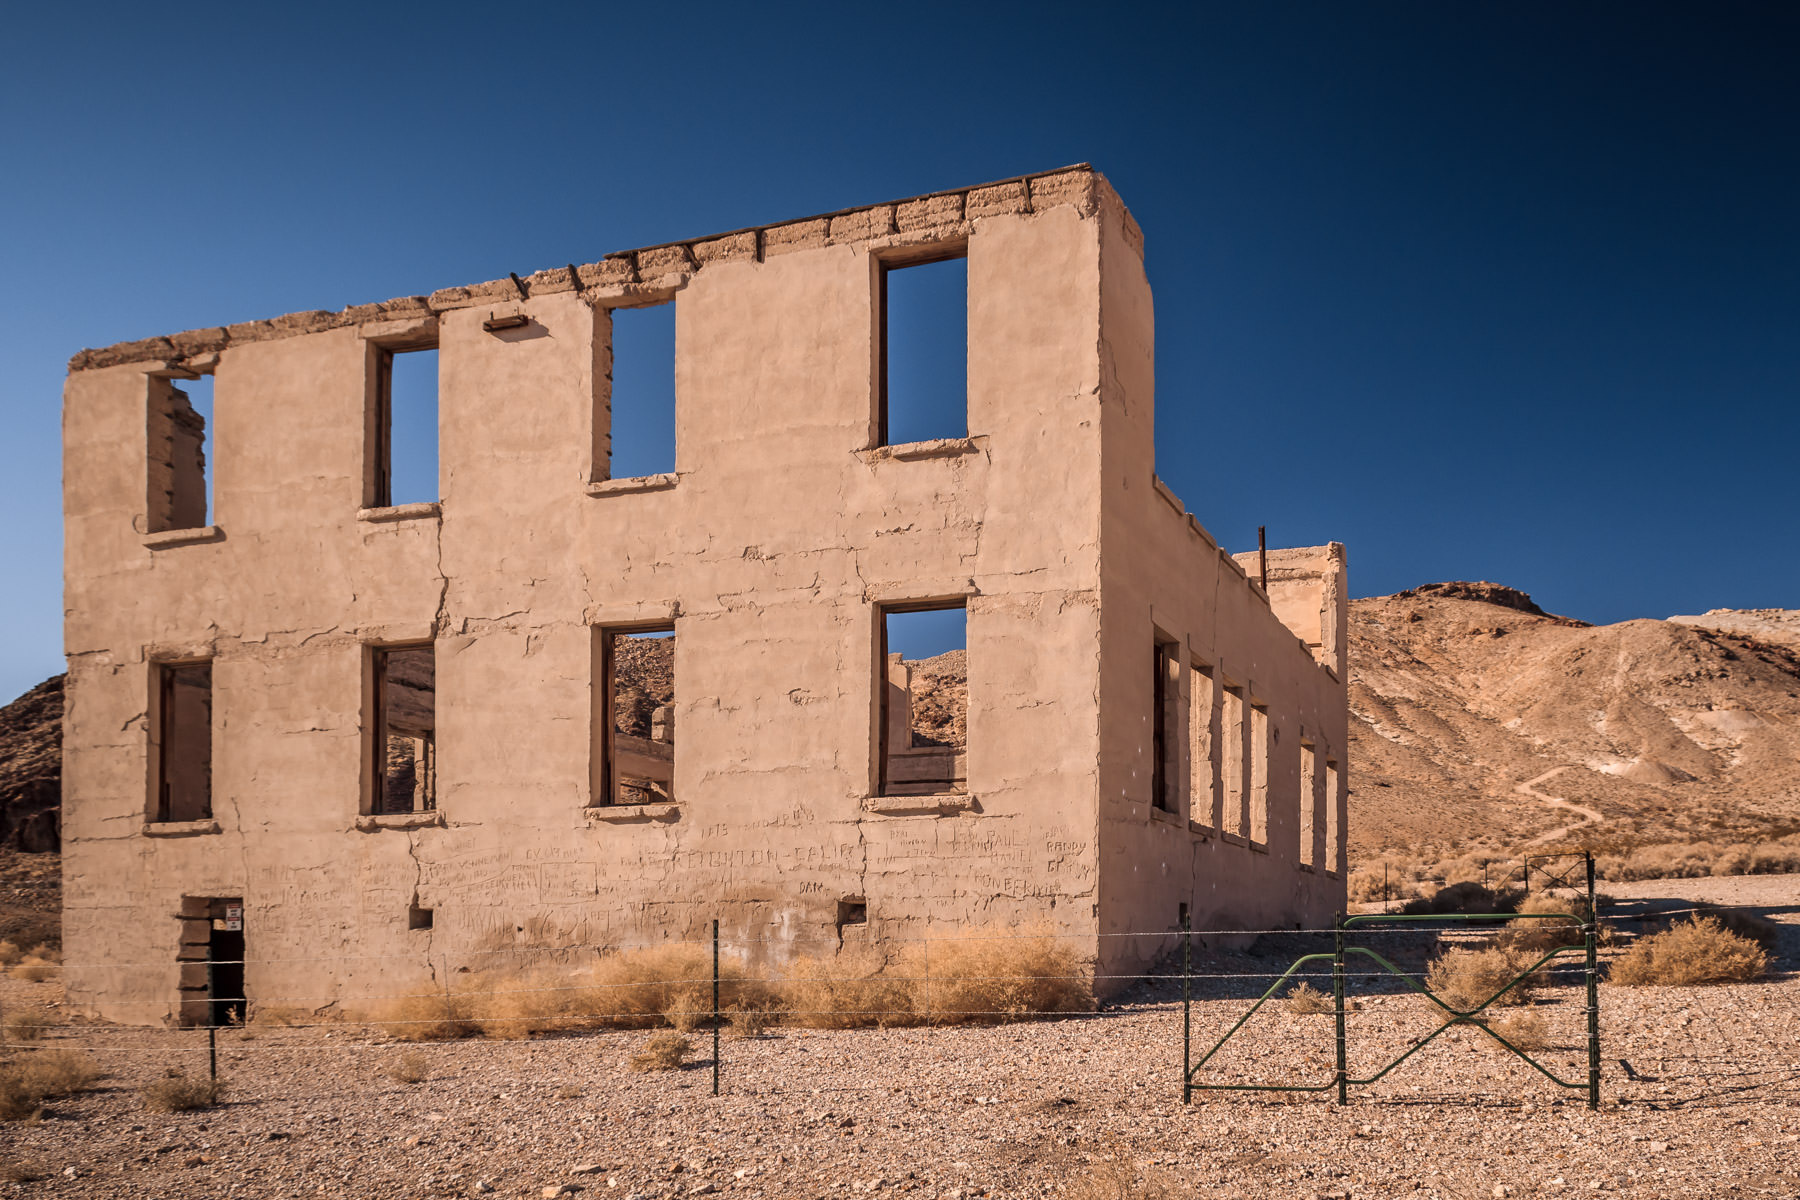 The remains of a long-dead, abandoned building in the Nevada ghost town of Rhyolite, near the California border.